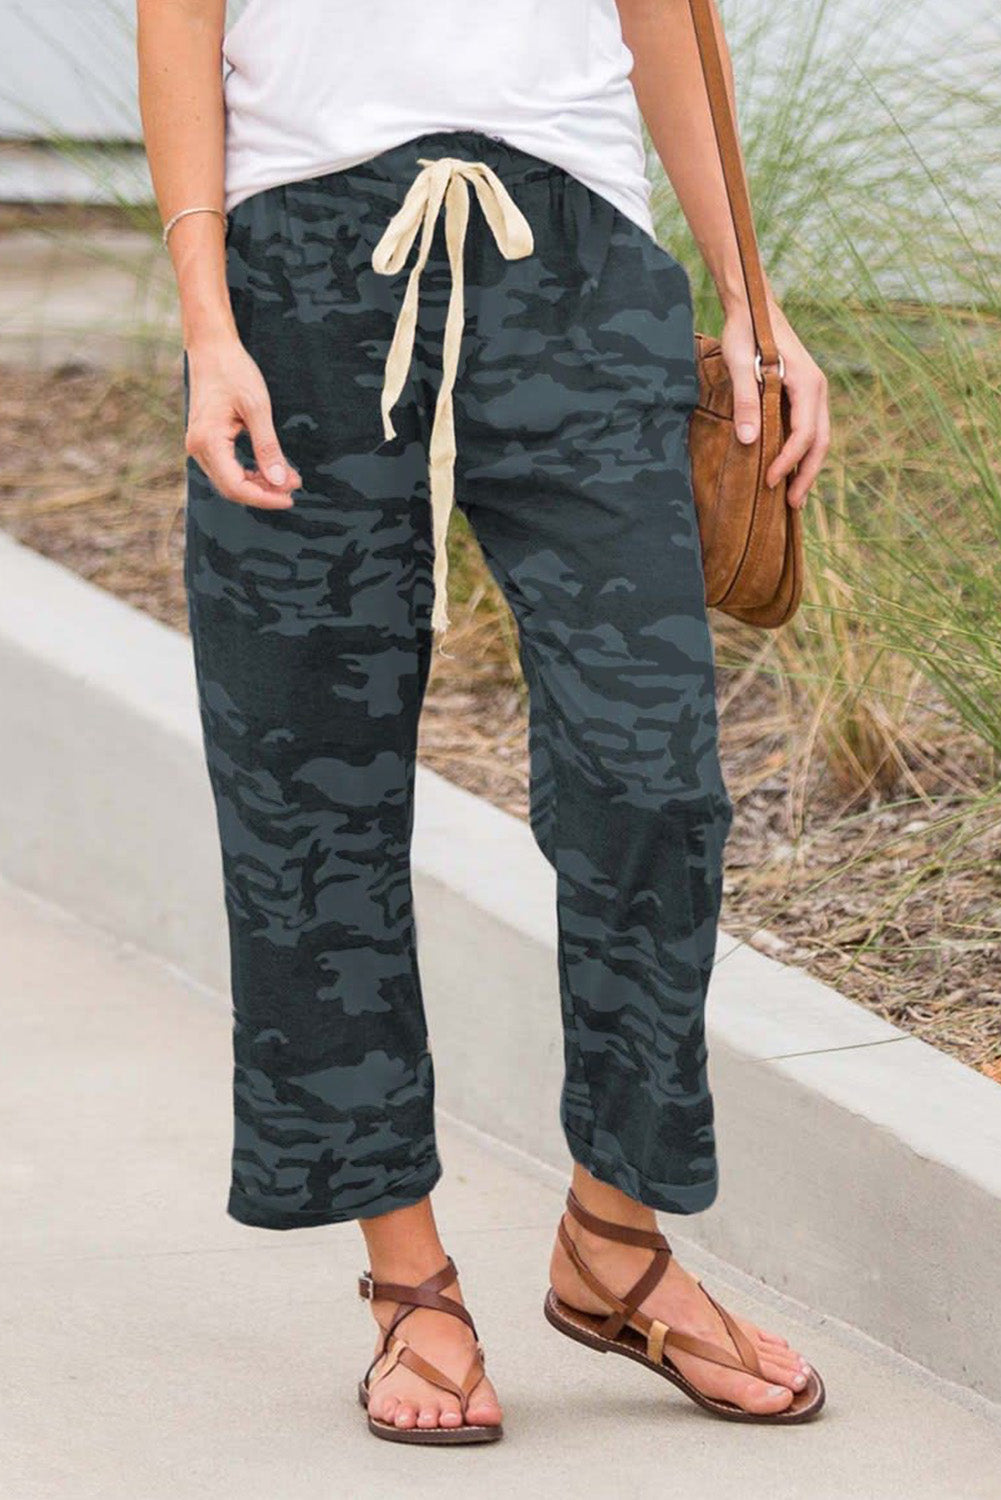 Dark Green Camouflage Lounge Pants Pants & Culotte Discount Designer Fashion Clothes Shoes Bags Women Men Kids Children Black Owned Business